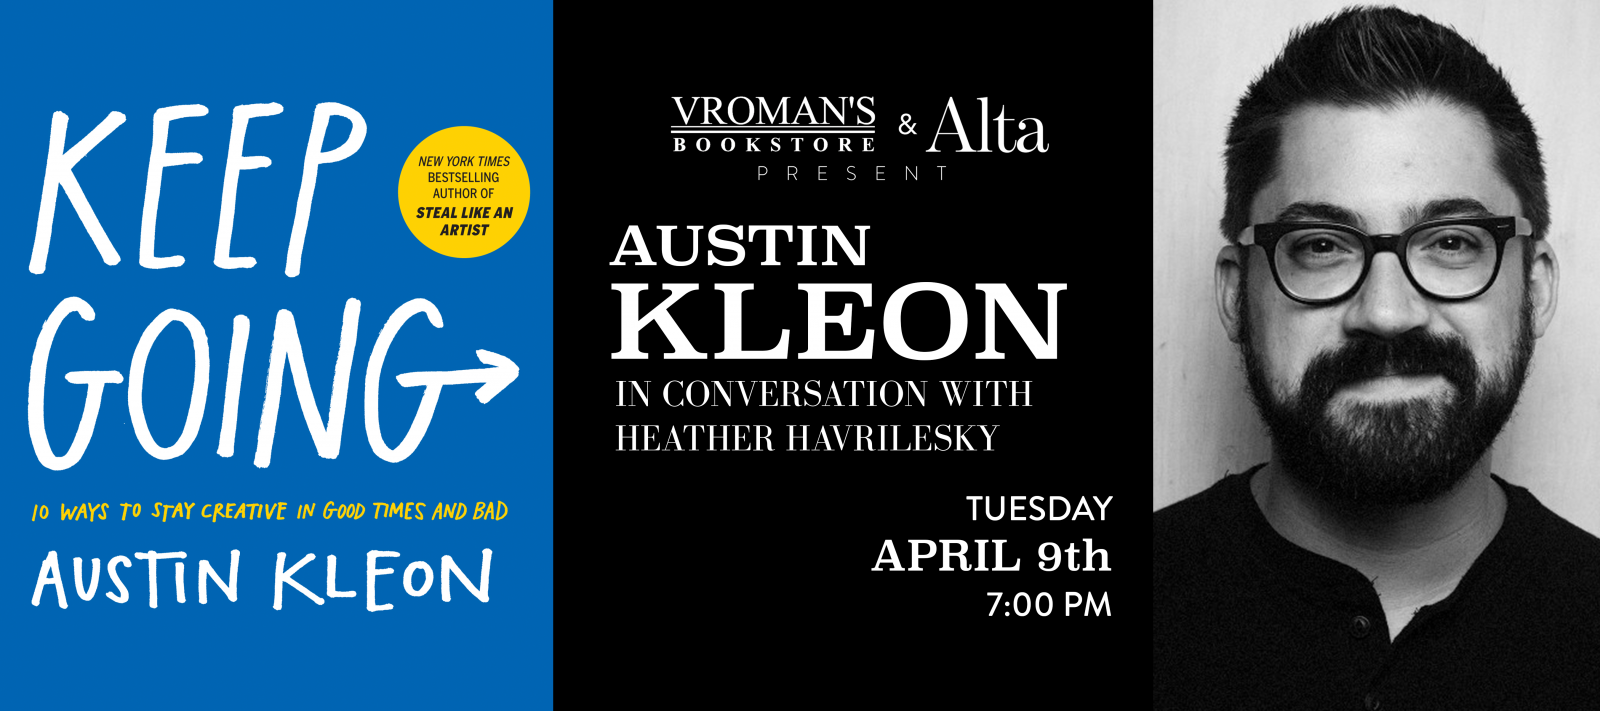 Austin Kleon, in conversation with Heather Havrilesky Tuesday April 9th at 7pm